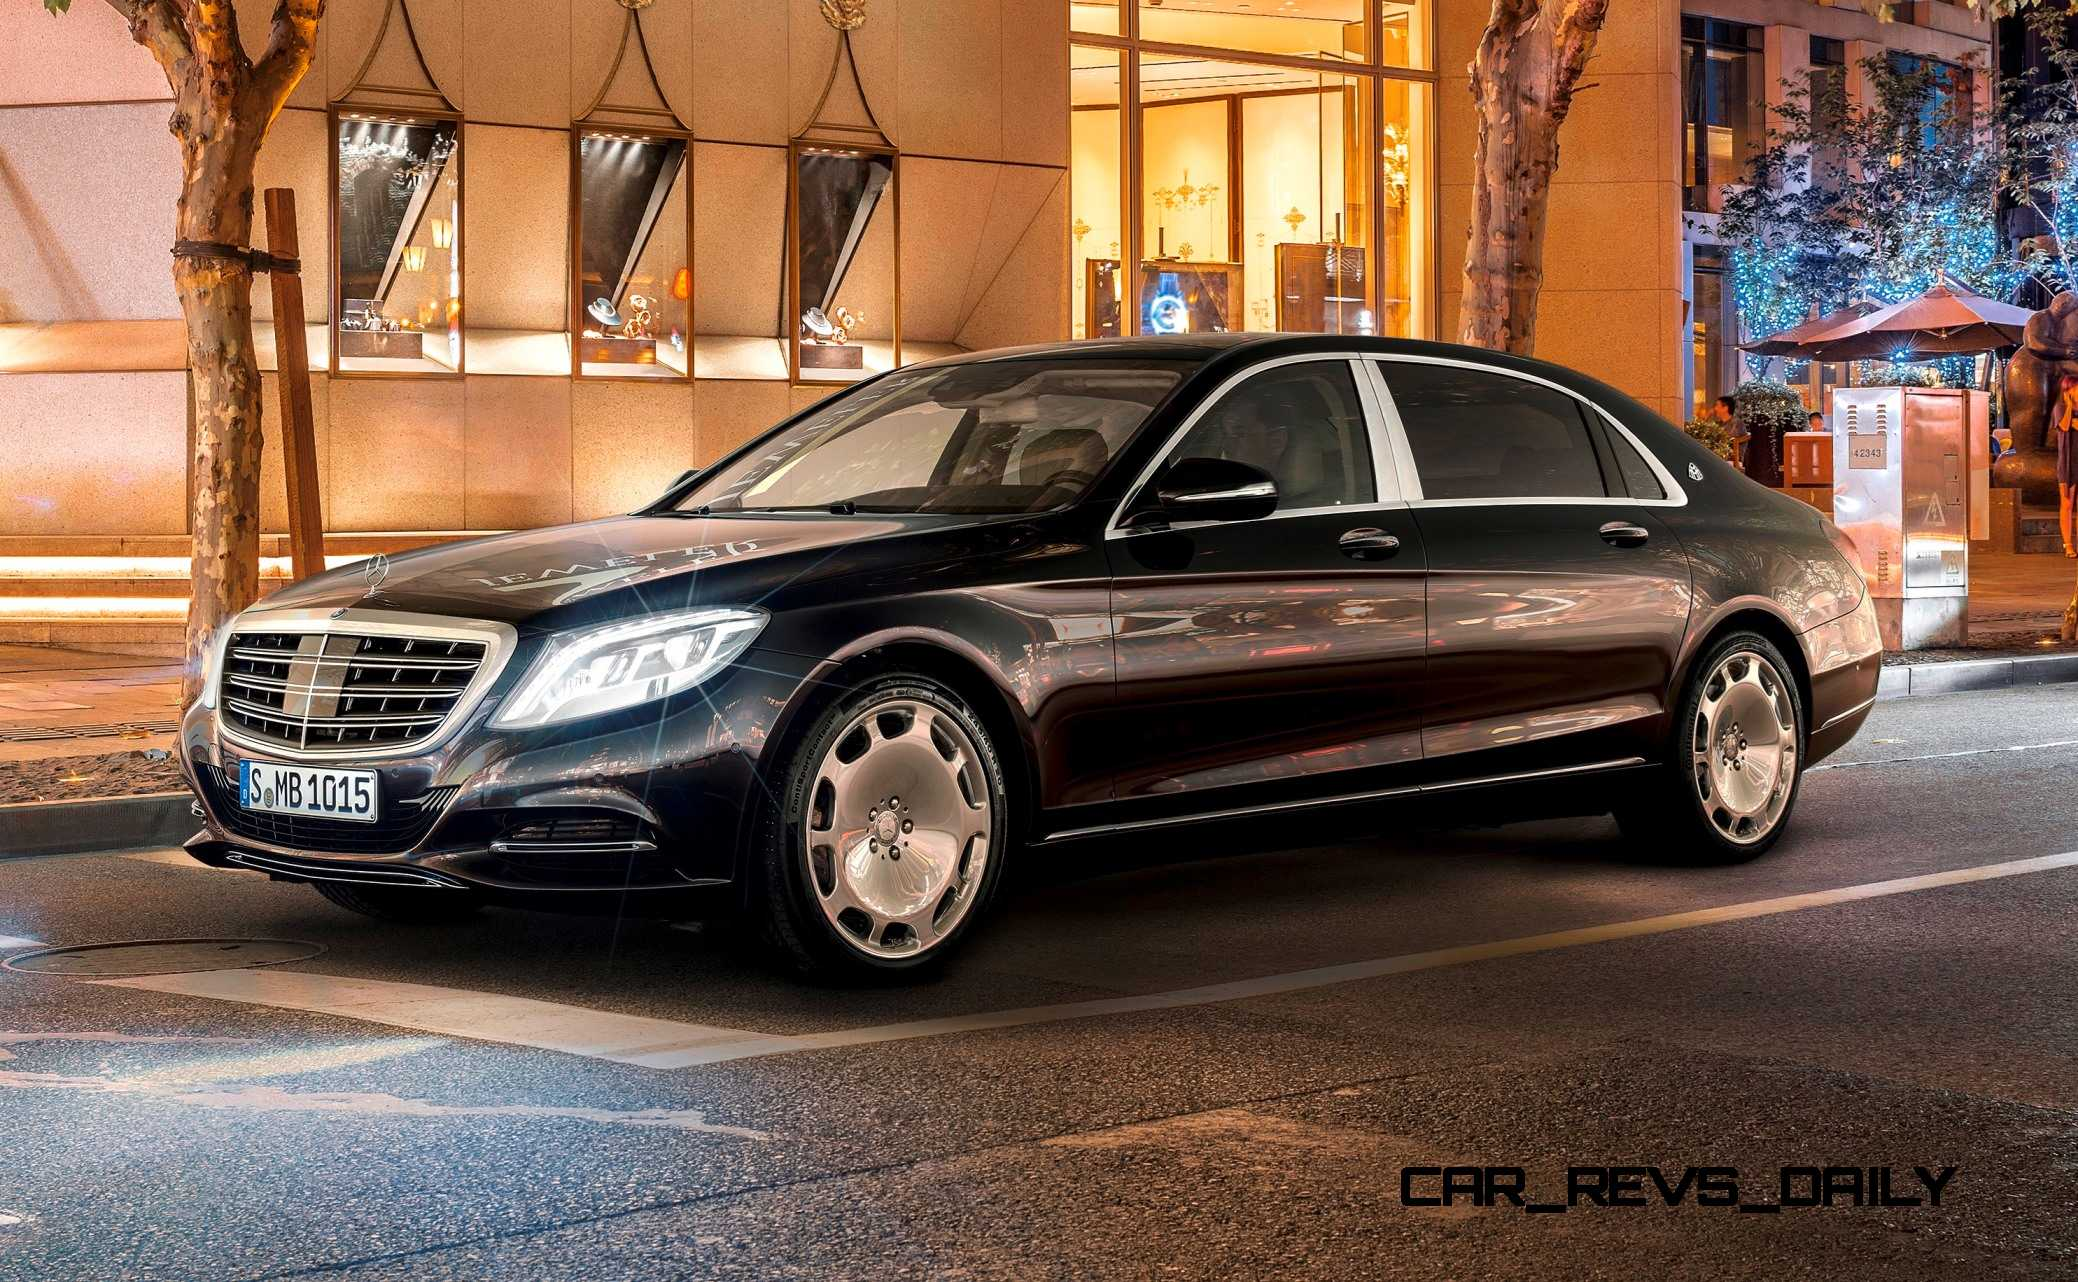 http://www.car-revs-daily.com/wp-content/uploads/2014/11/2015-Mercedes-Maybach-S600-31.jpg